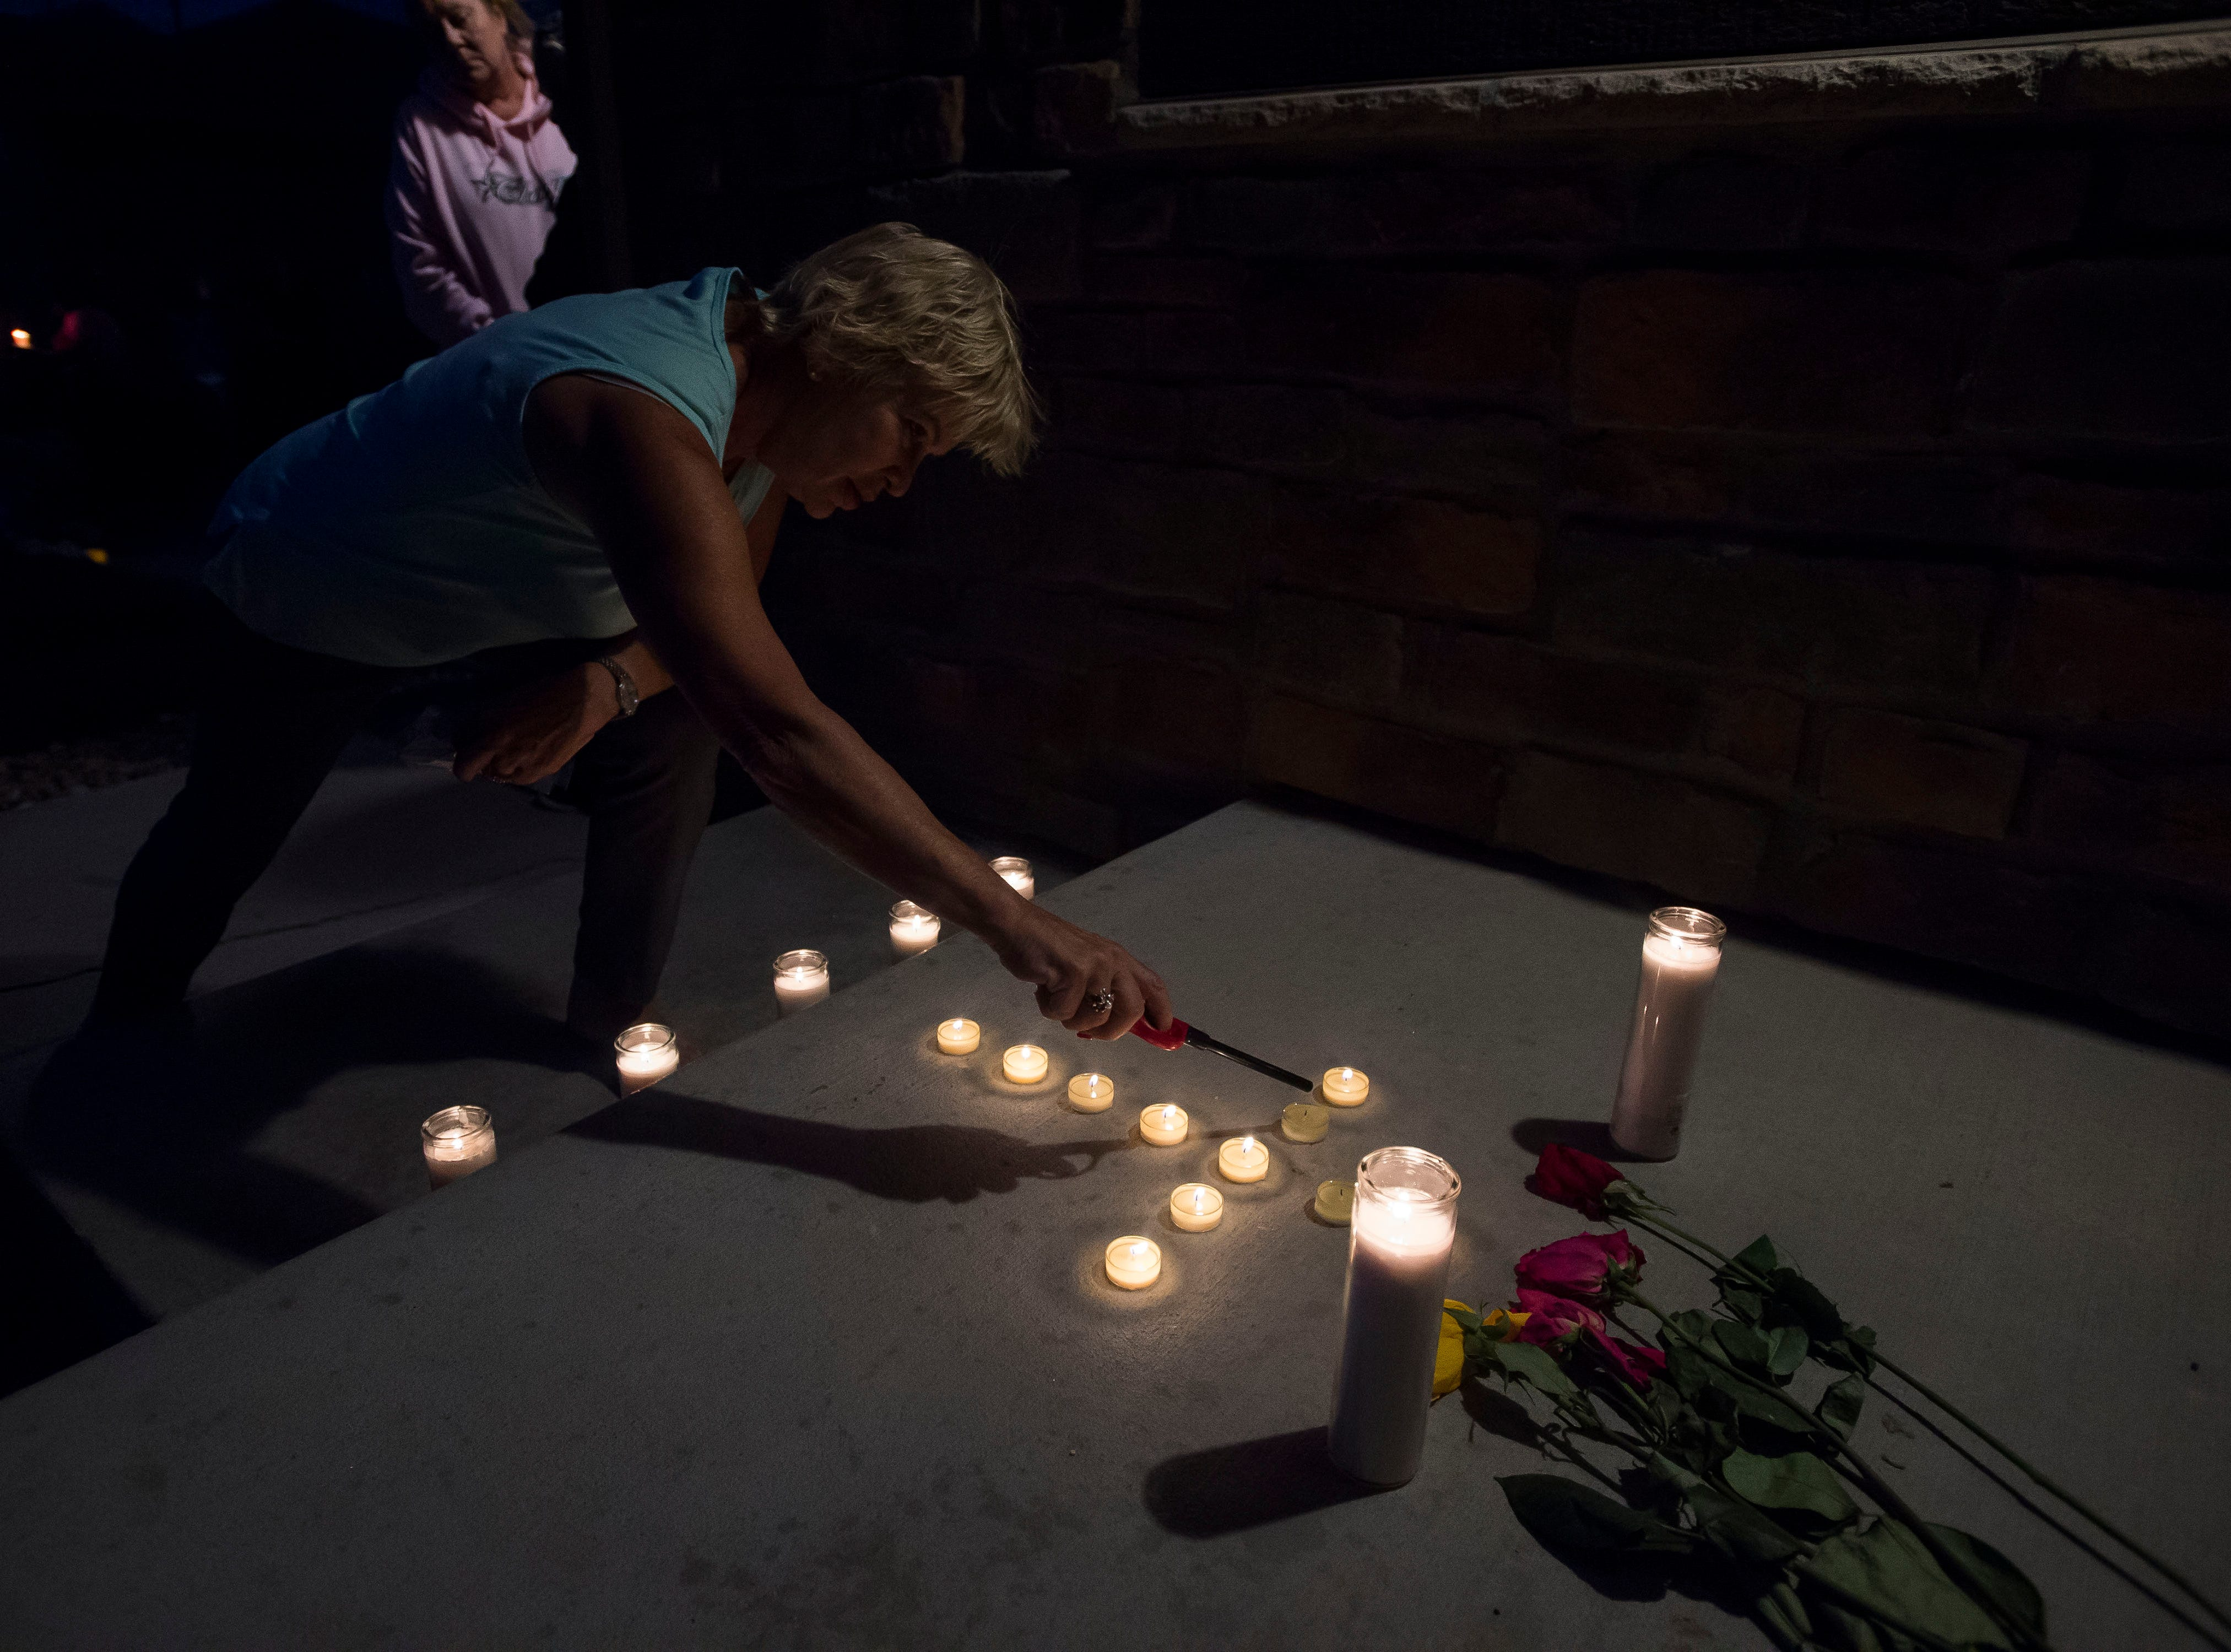 Neighborhood resident Mary Ann Bogner lights candles on the front porch during a candle-lit vigil for the slain Shanann Watts and her two daughters, Bella, 4, and Celeste, 3, in front of the Watts' family home on Friday, Aug. 17, 2018, in Frederick, Colo.